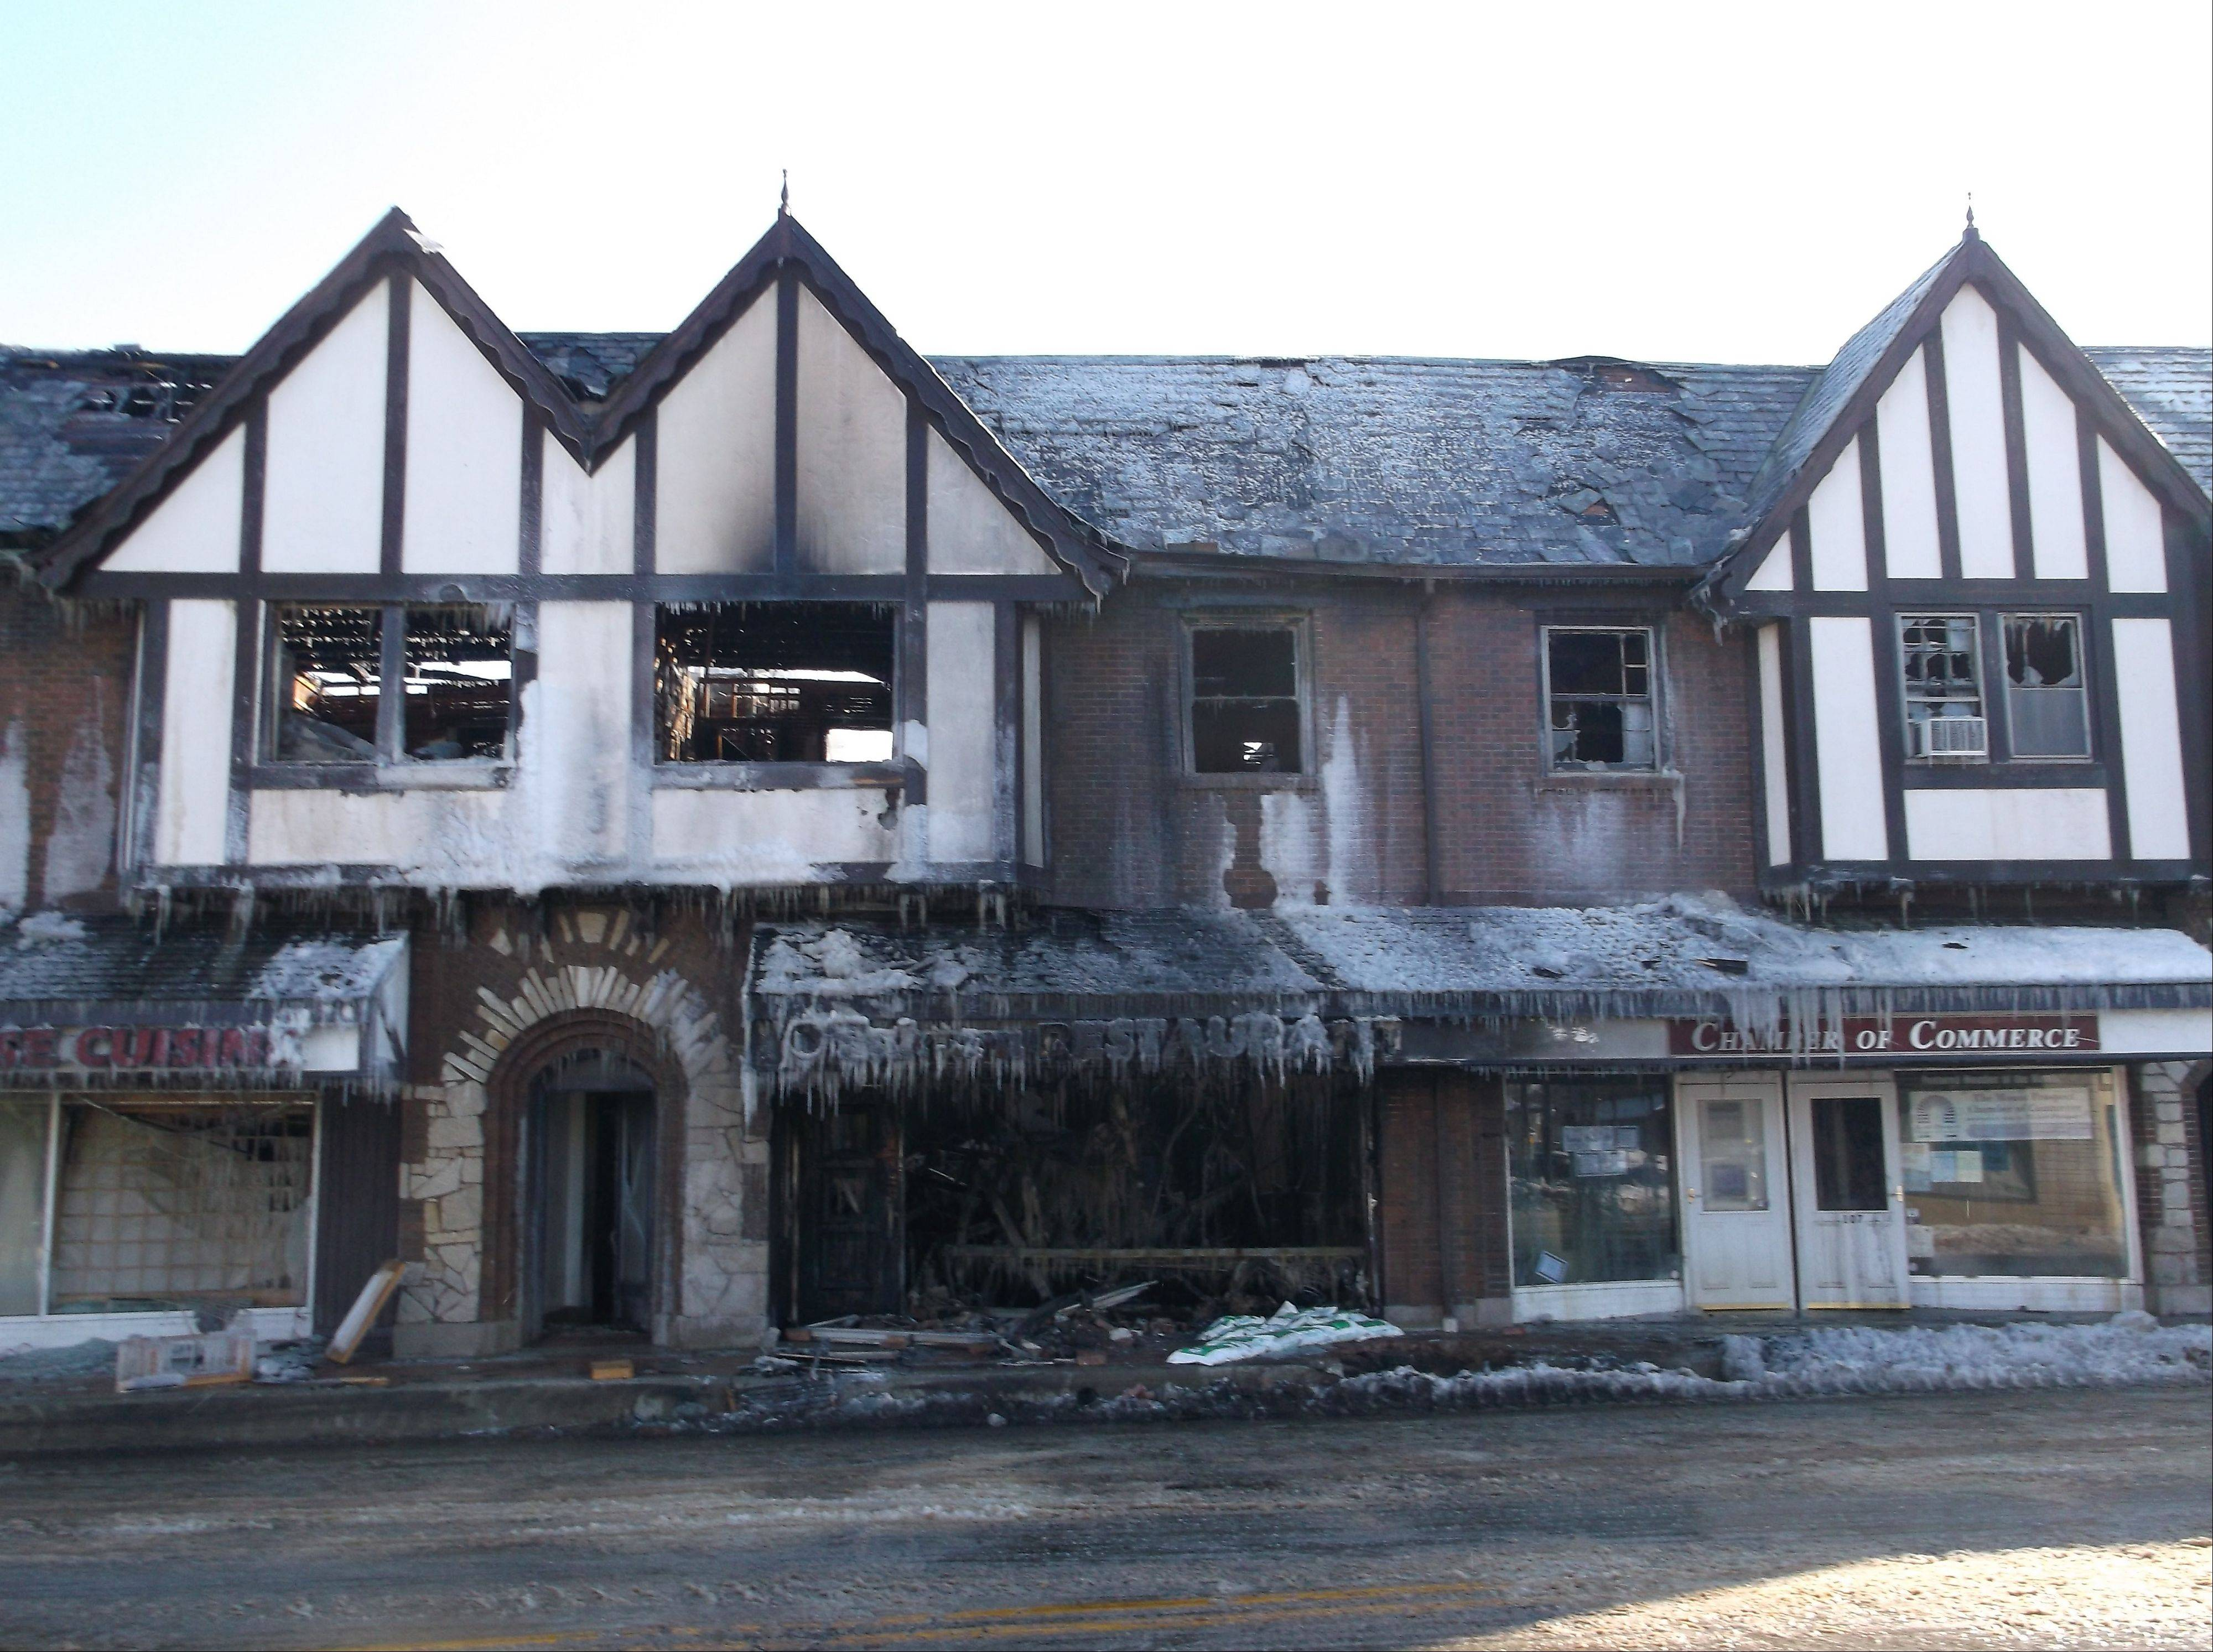 An early morning fire gutted a downtown Mount Prospect restaurant Sunday, left several residents homeless and damaged neighboring businesses. No one was injured in the blaze, the cause of which is under investigation.